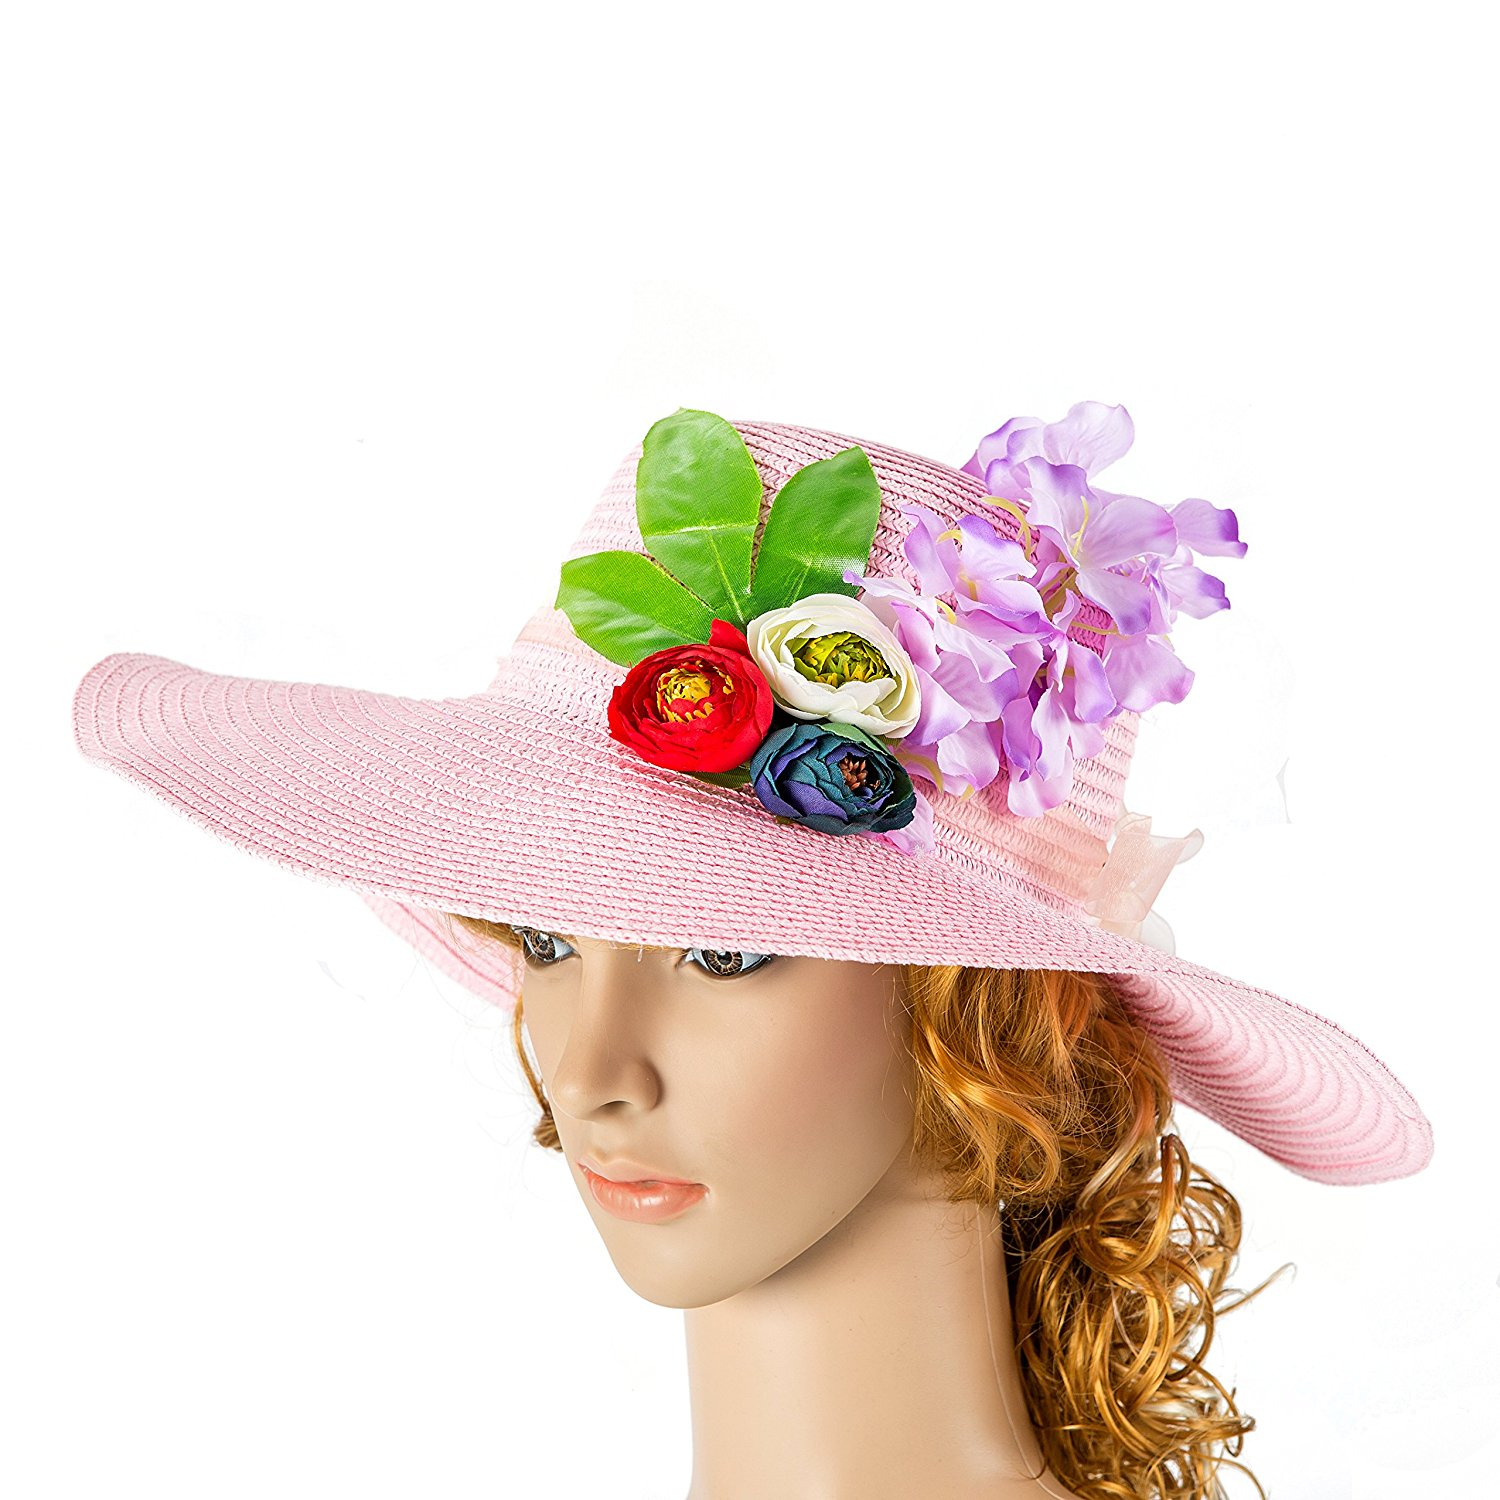 7e5a45a3494bb Get Quotations · Women Hat powder pink Hat with Real Touch Flowers rose  Kentucky Derby Hat Party Summer Hat